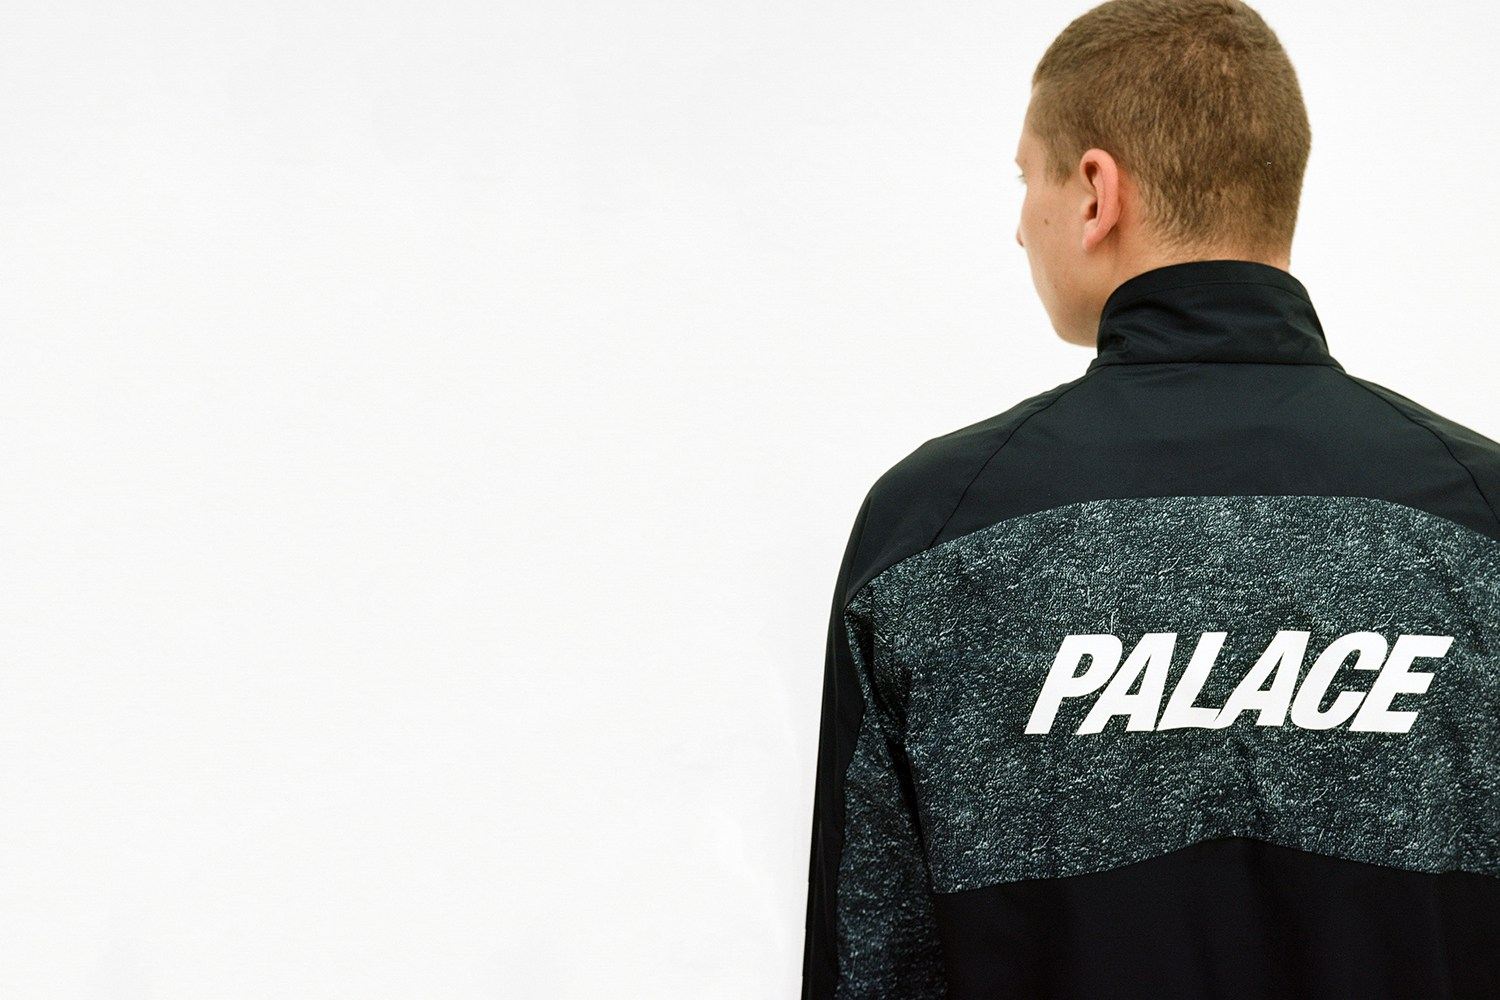 palace-adidas-2016-summer-collection-012